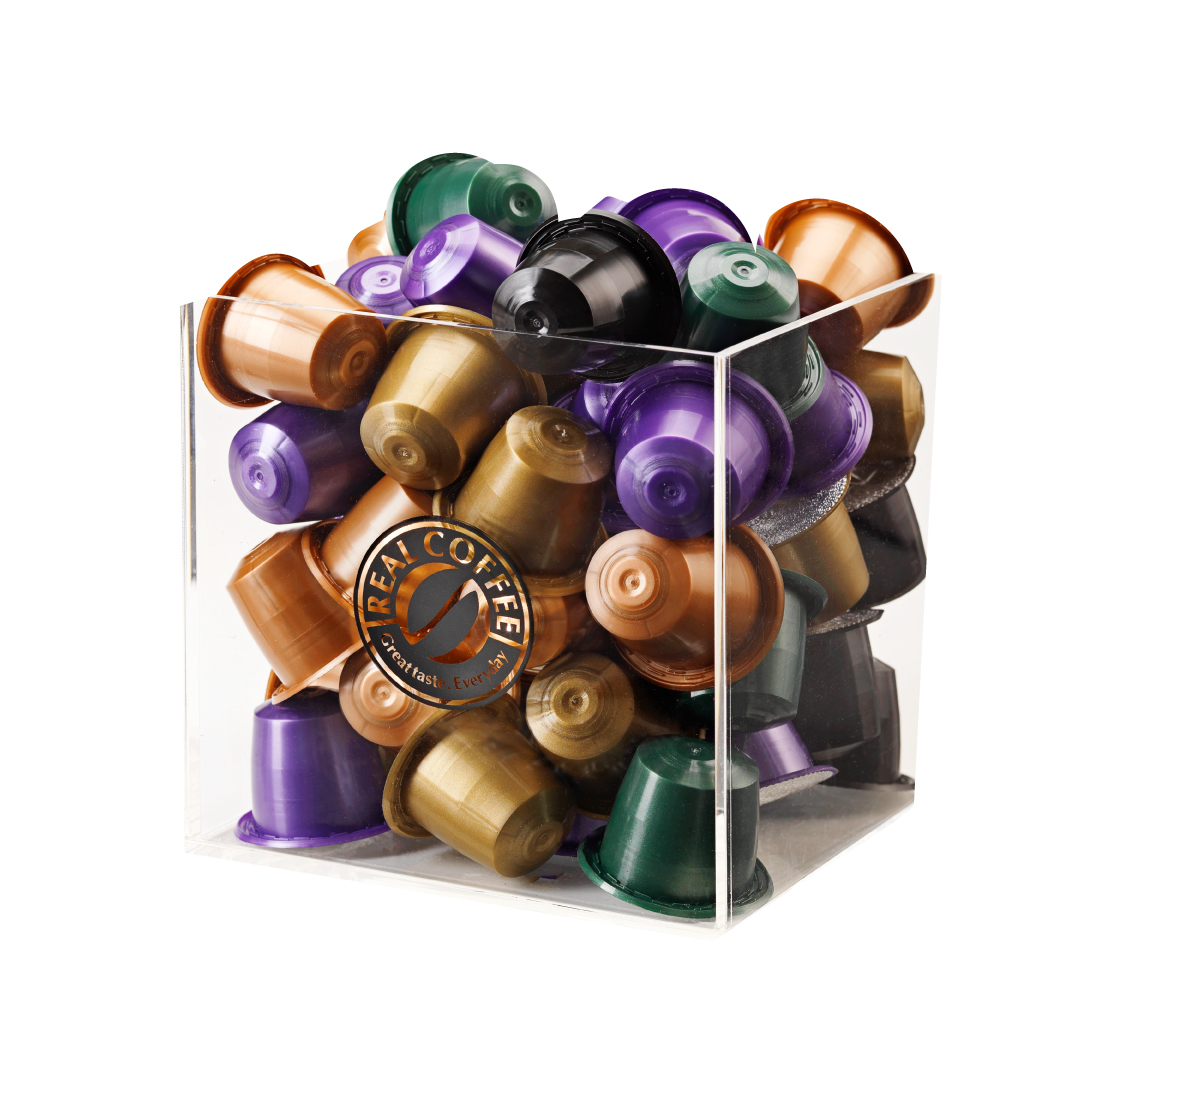 Giga pack 550 capsules real coffee nespresso compatible pods best in - Rangement capsule nespresso ...